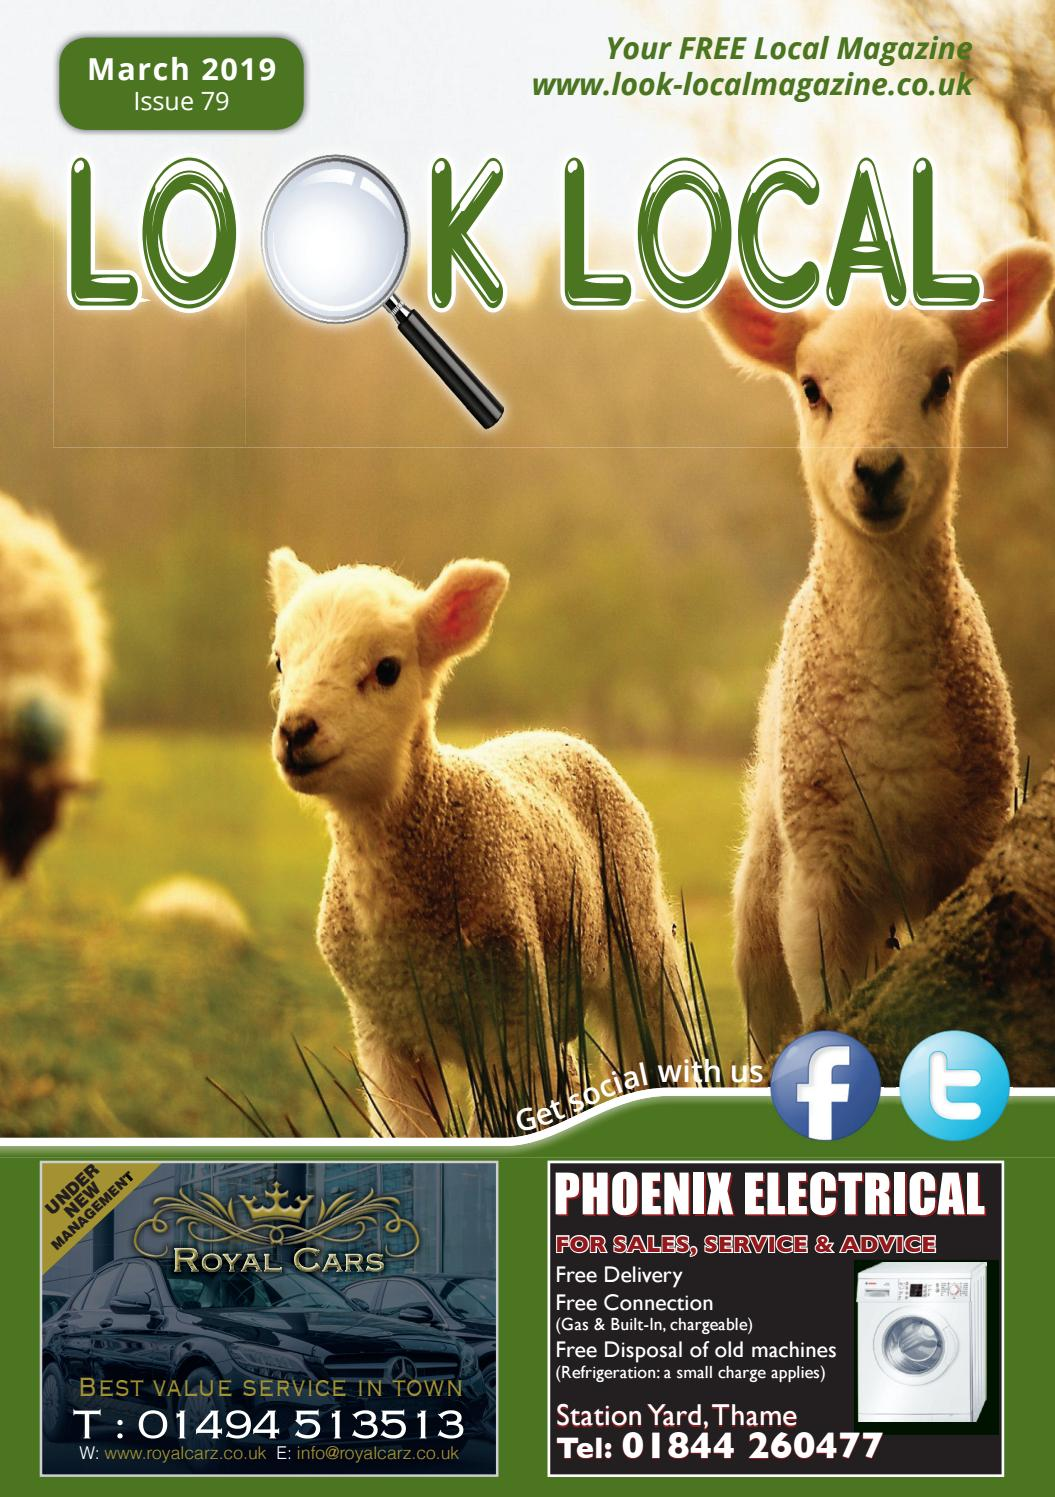 Look Local Magazine, March 2019 Edition, Issue 79 by Look